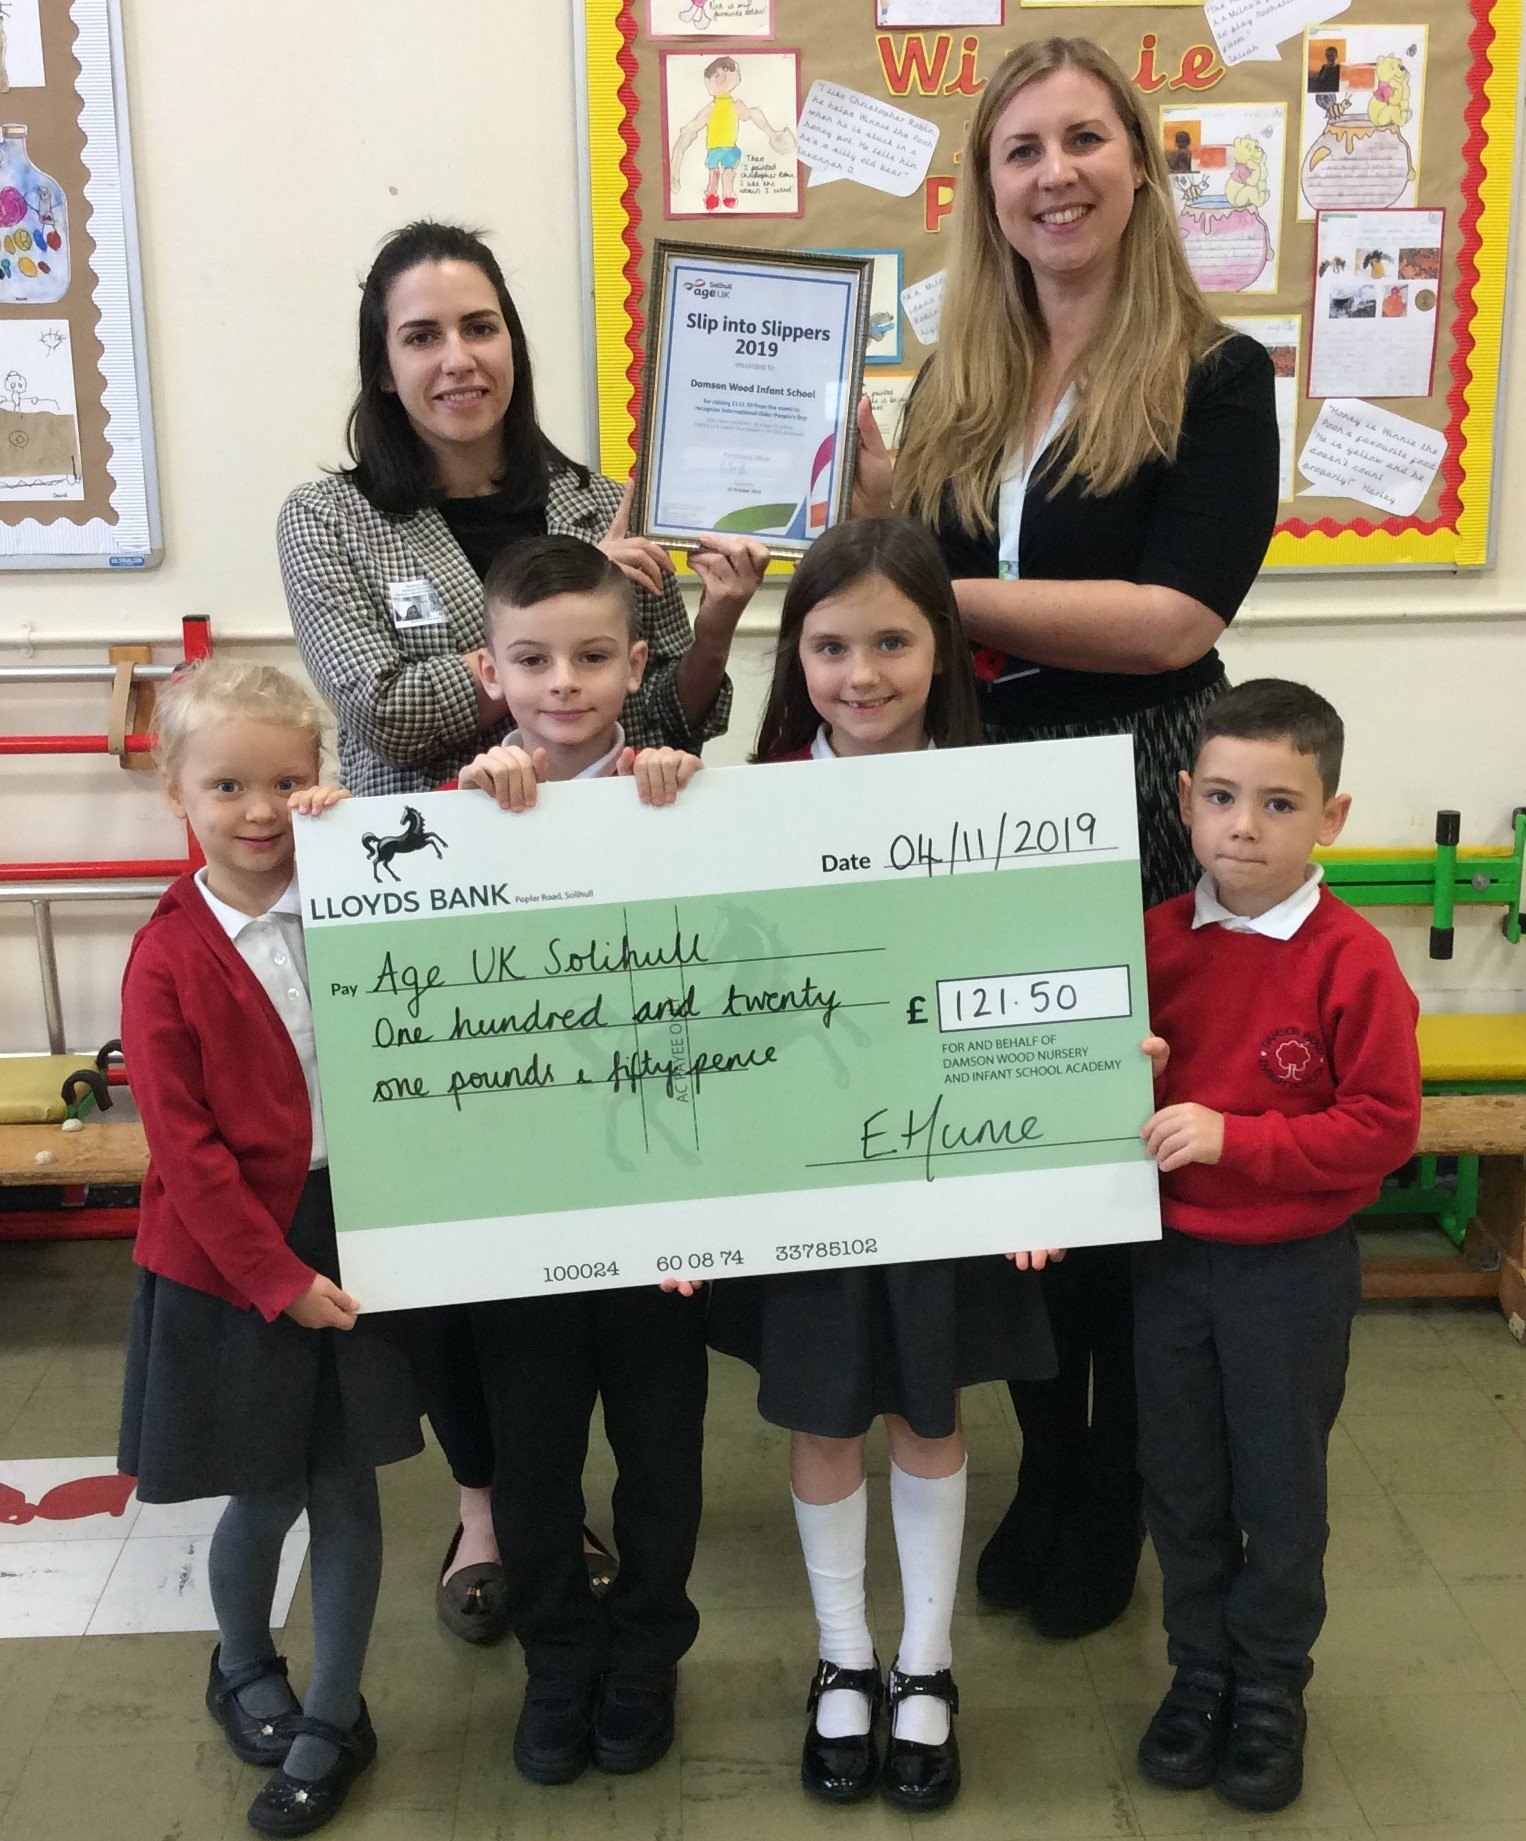 Fundraising Officer, Becky, and Damson Wood Infant School Headteacher, Mrs Hume, holding a certificate, and four children from the school holding a giant cheque.